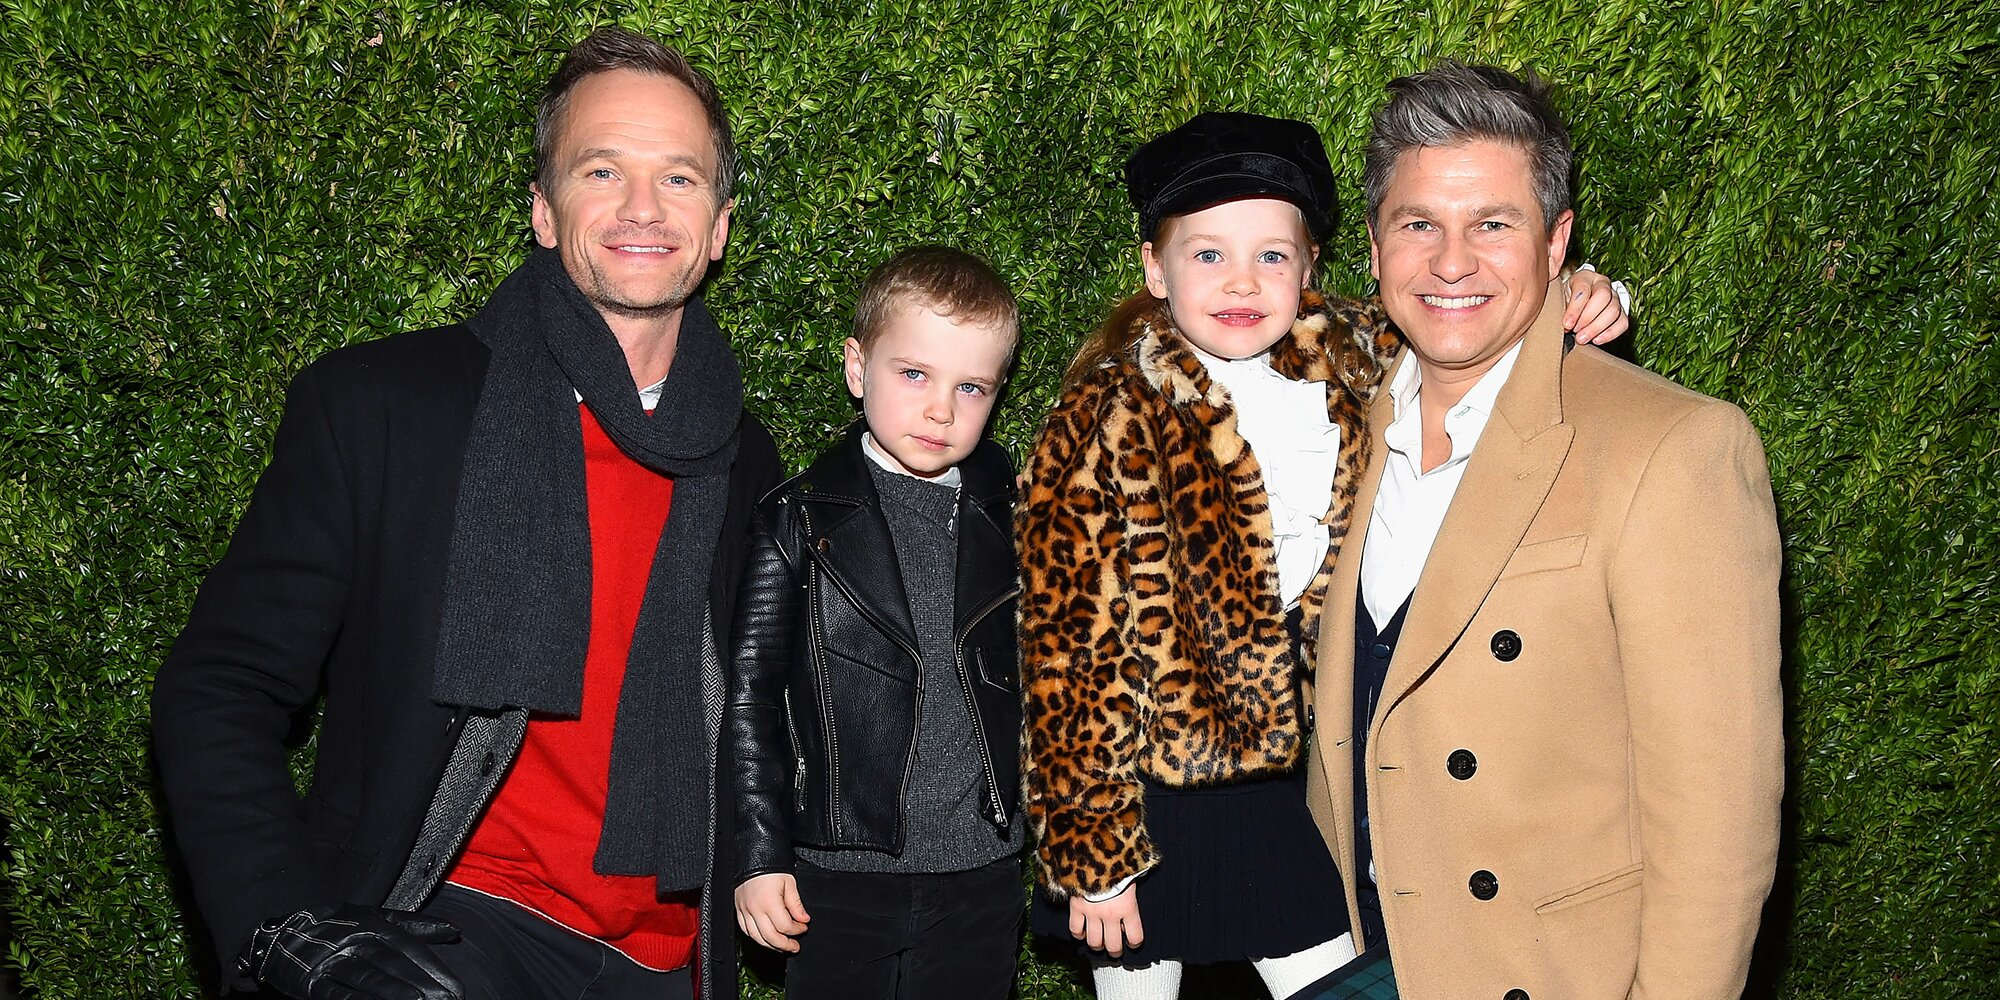 Neil Patrick Harris Jokes He'll Visit Disney with His Kids Every Year Until They 'Can't Stand Me'